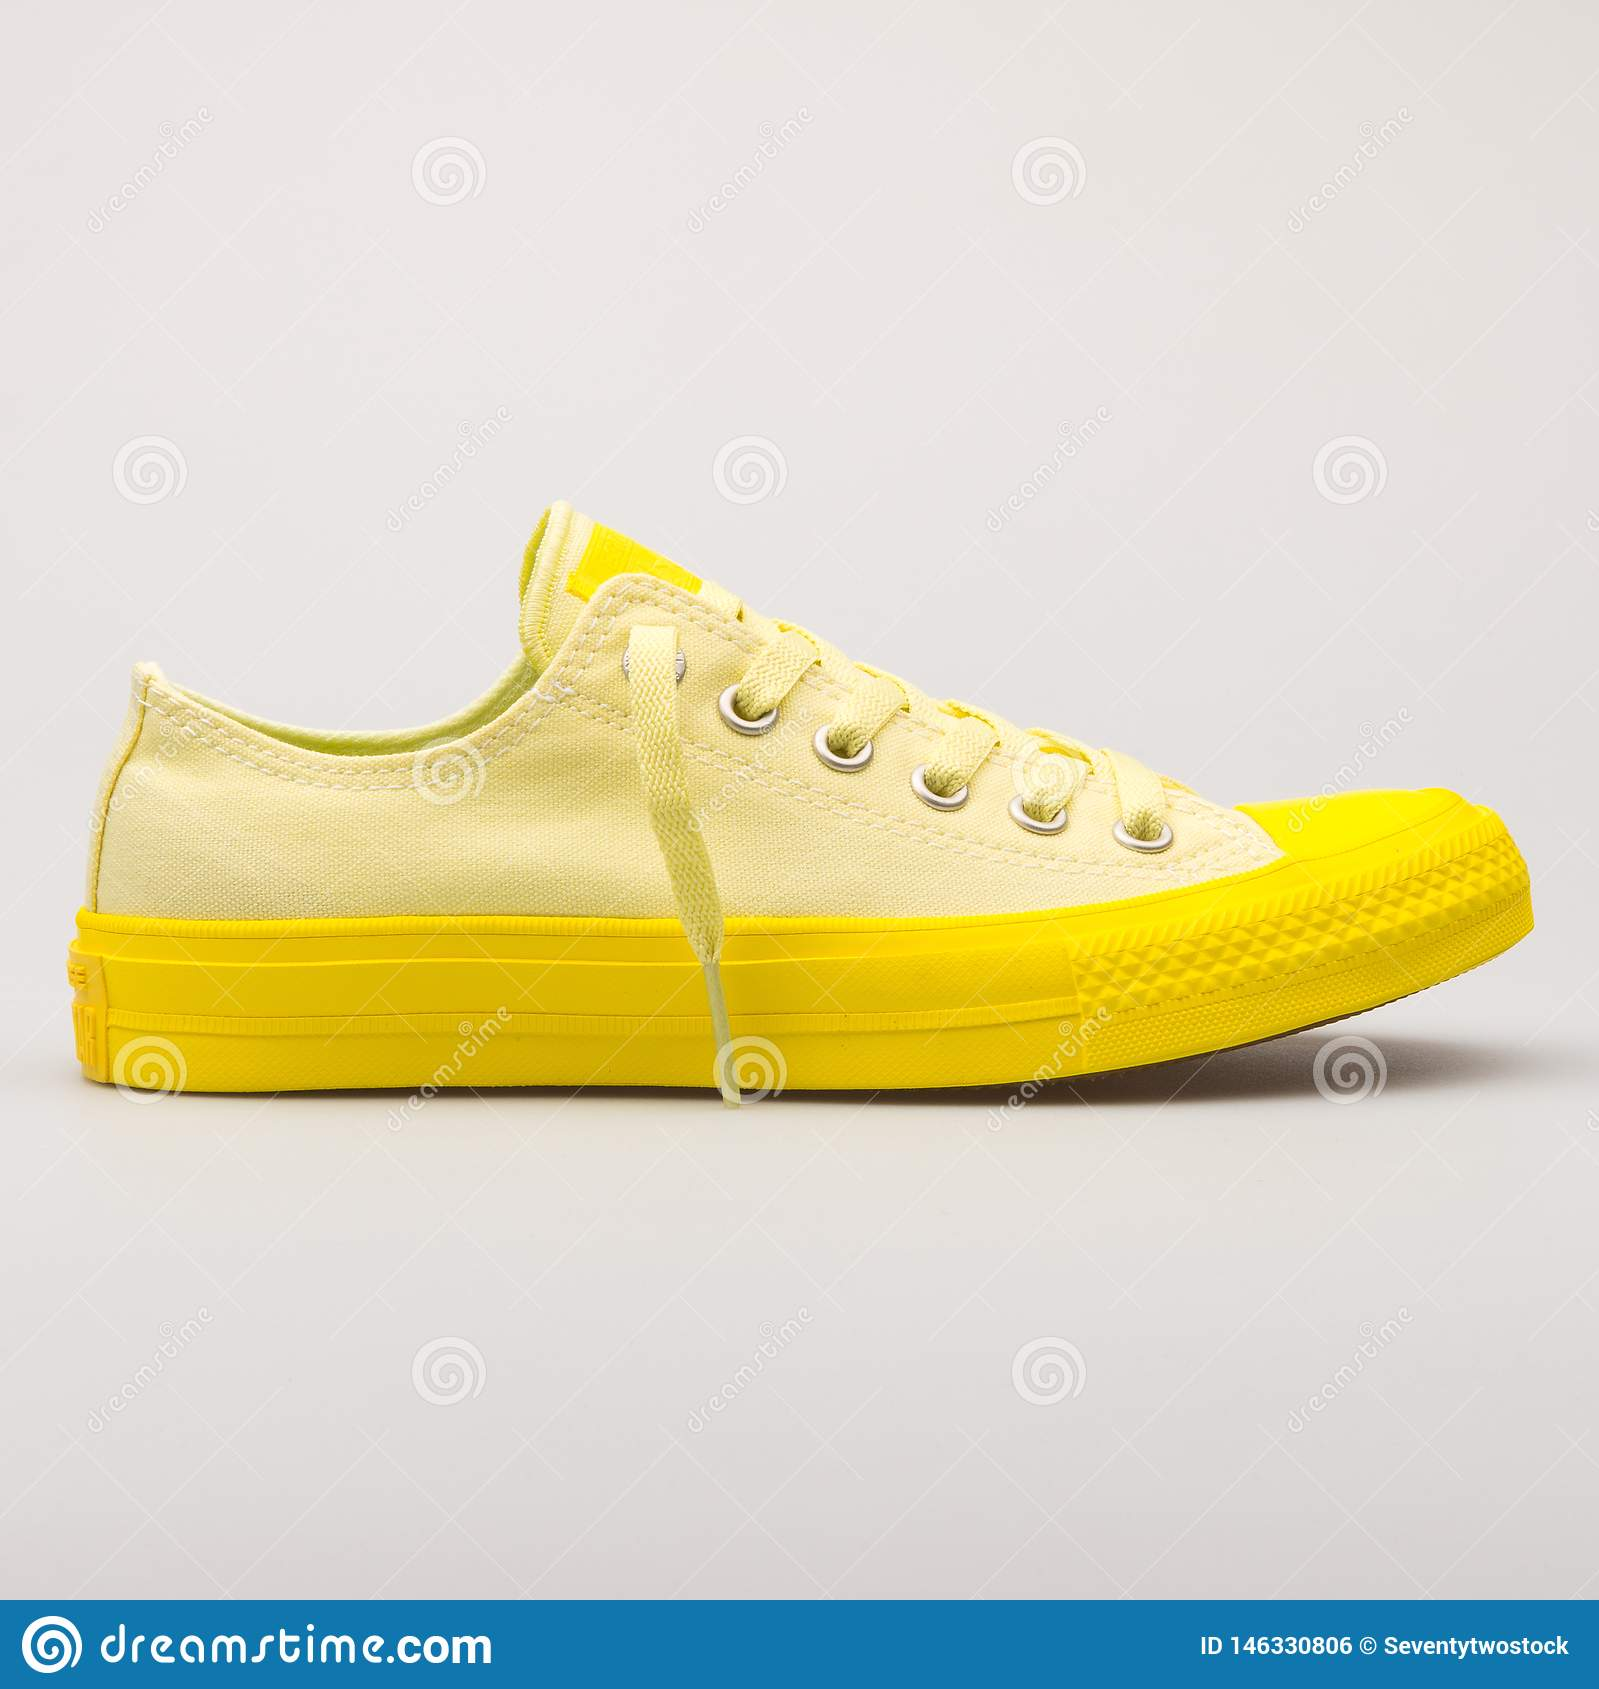 Converse Chuck Taylor All Star 2 OX Lemon Yellow Sneaker